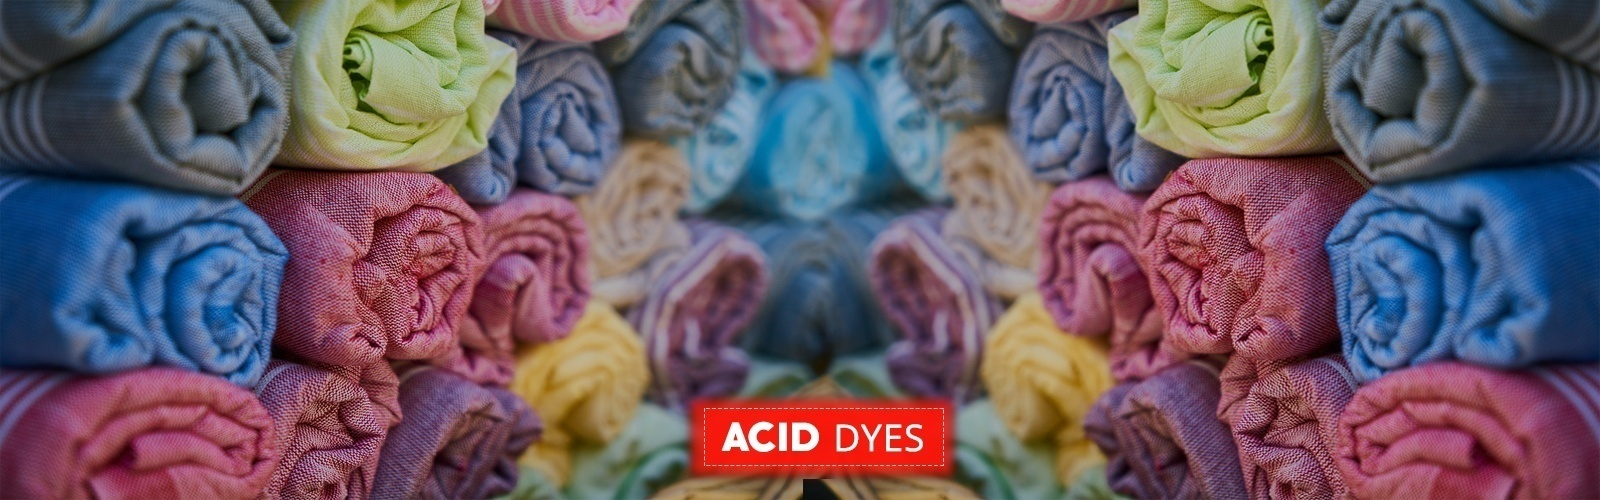 Acid Dyes Manufacturer in USA, Direct Dyes Exporter in Brazil, Acid Dyes exporter in Mexico